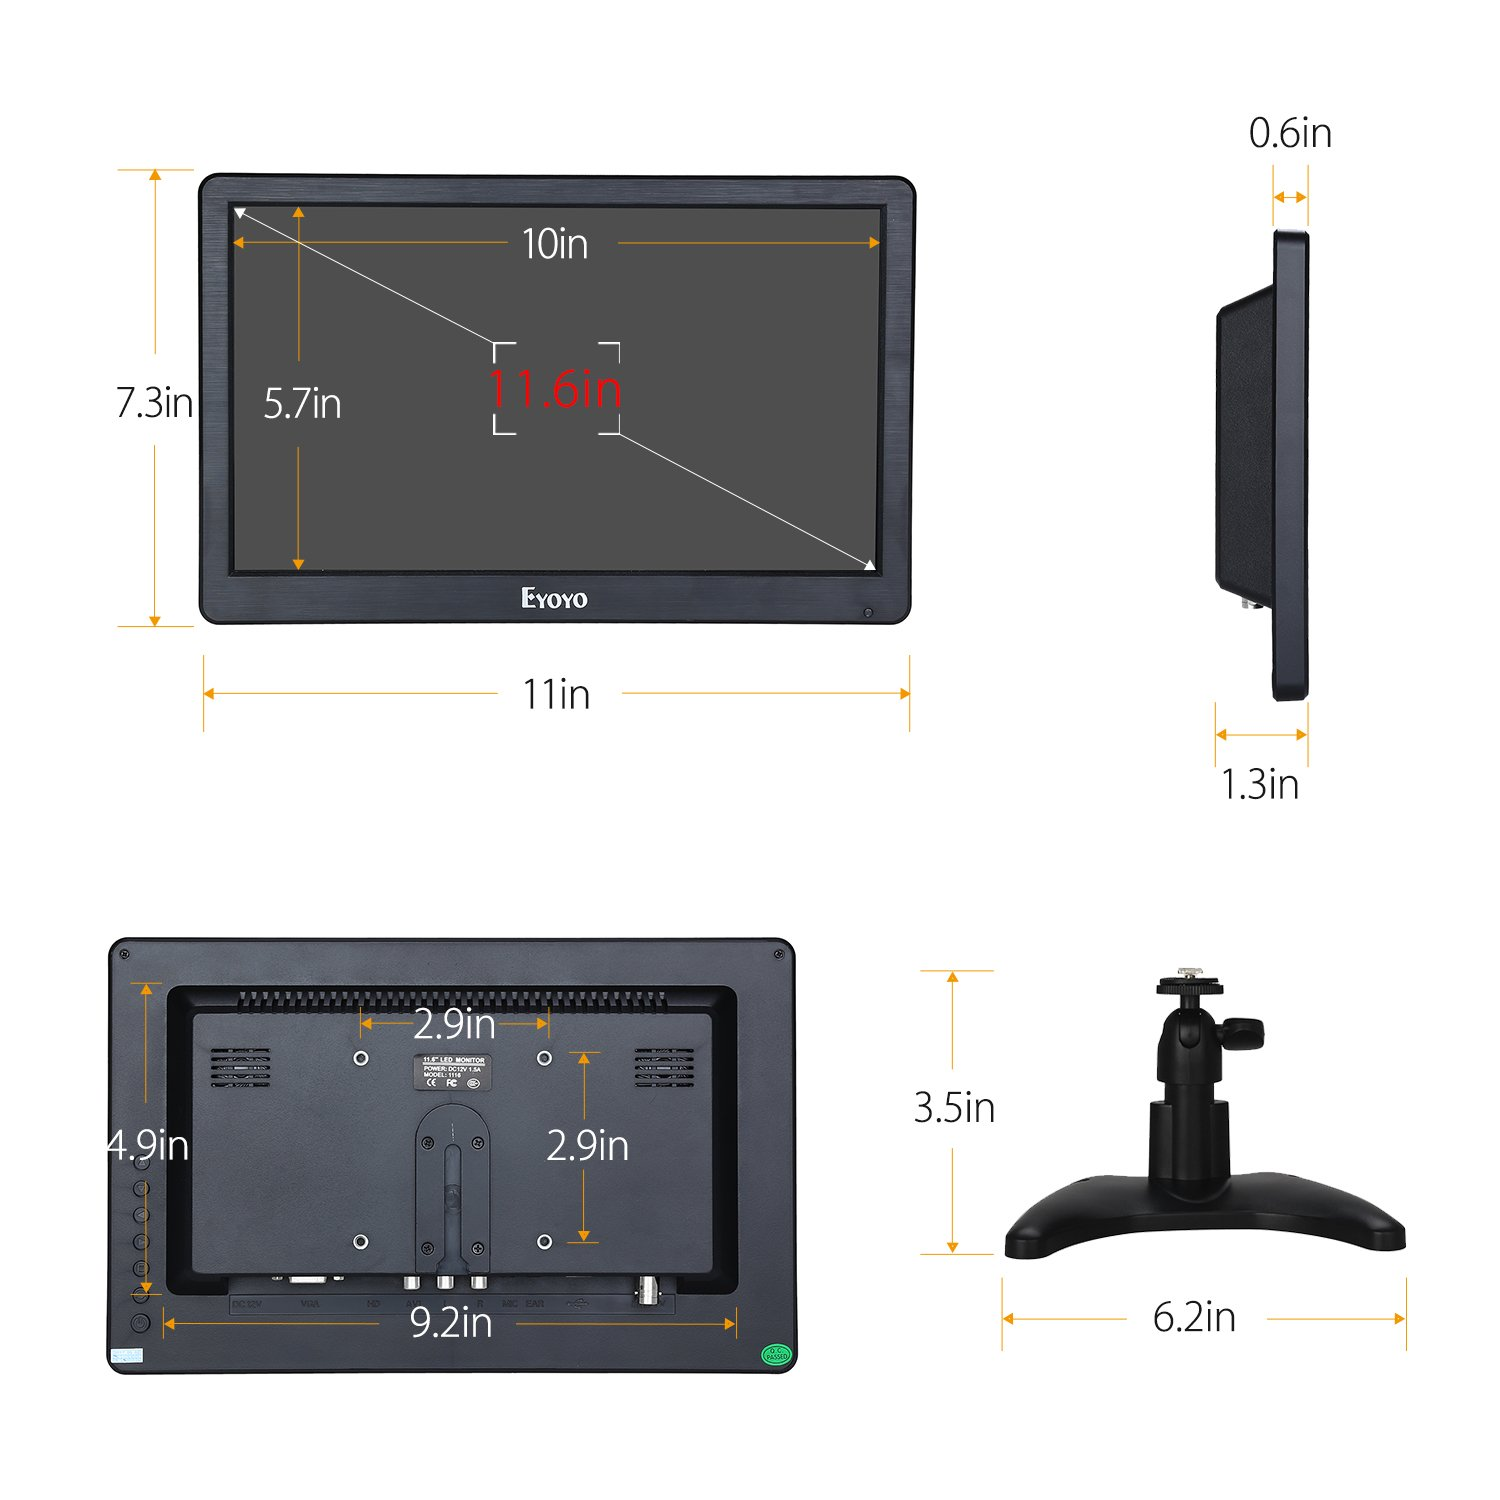 Eyoyo 12 inch HD 1920x1080 IPS LCD HDMI Monitor Screen Input Audio Video Display with BNC Cable for PC Computer Camera DVD Security CCTV DVR Home Office Surveillance by Eyoyo (Image #8)